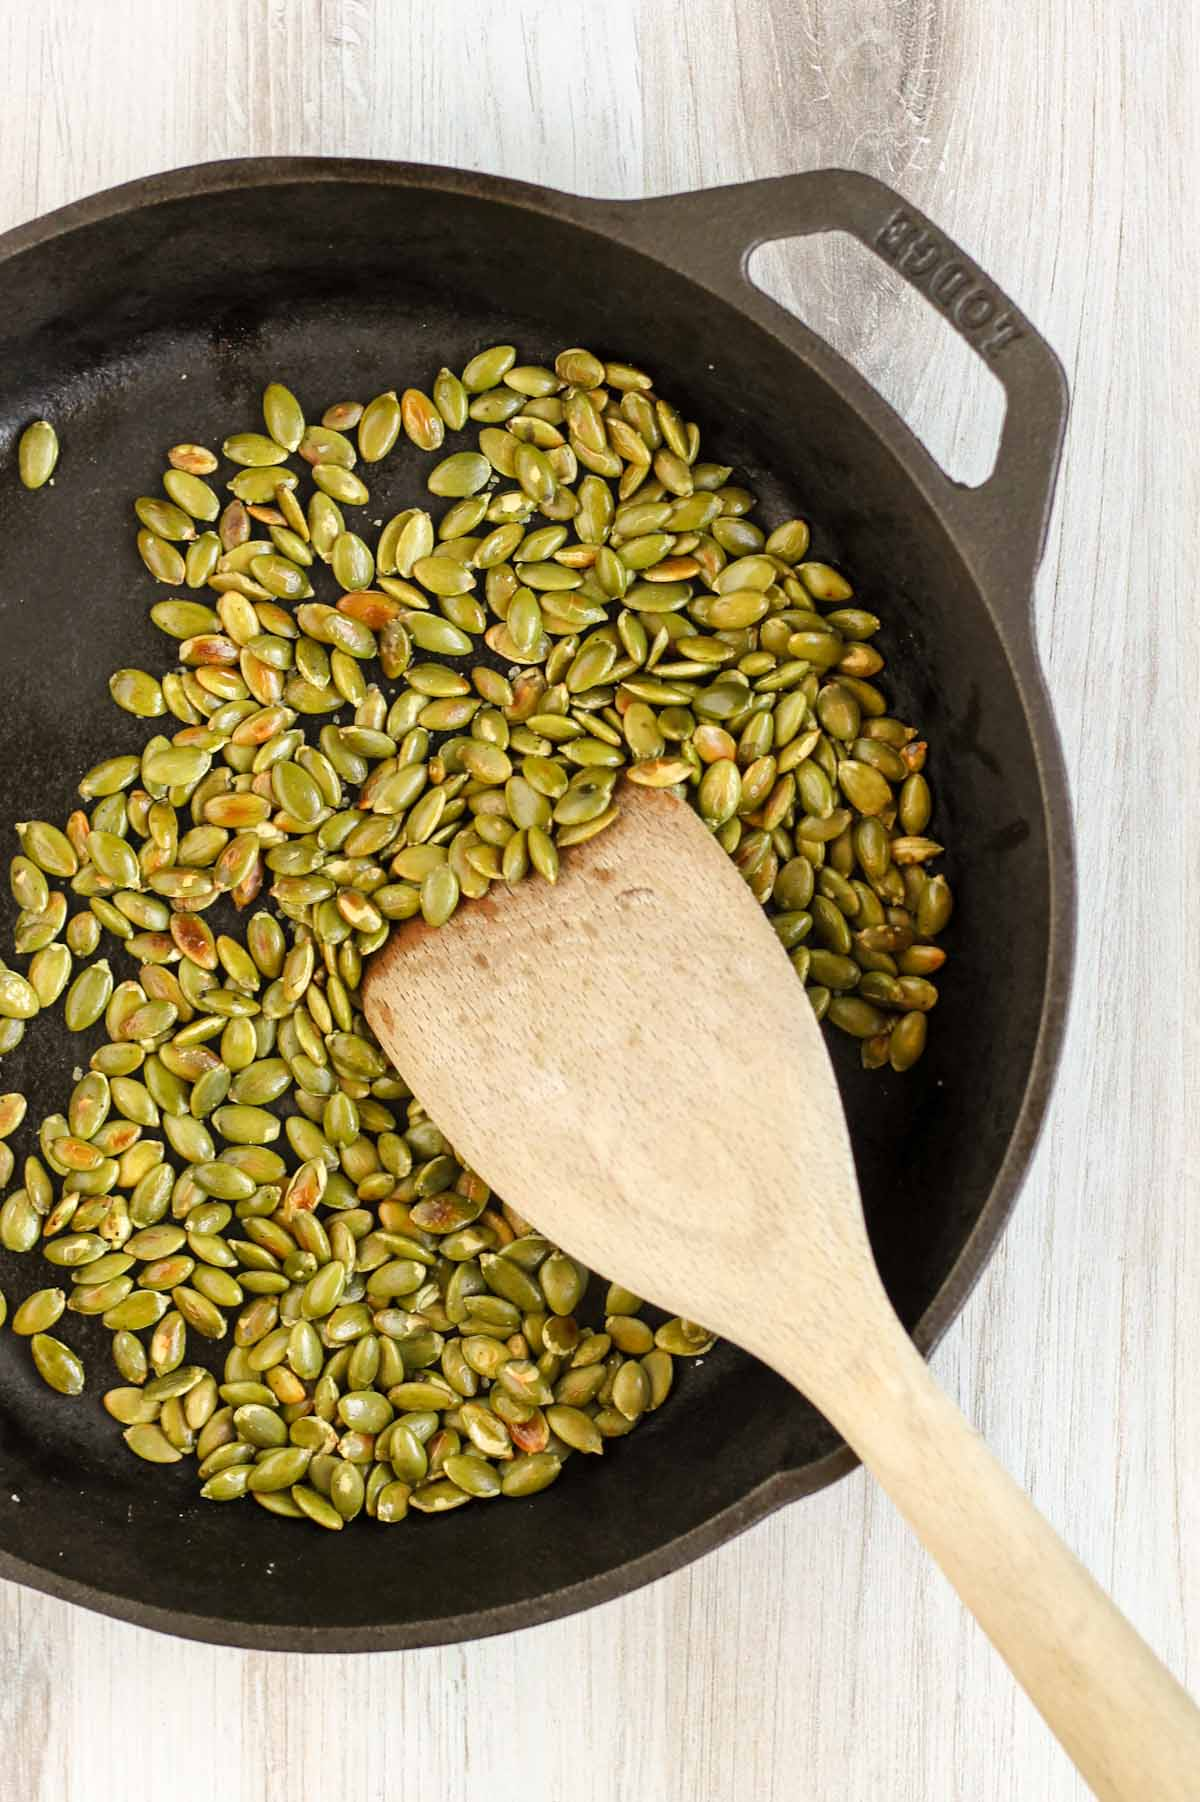 Roasted pumpkin seeds in a cast iron skillet.